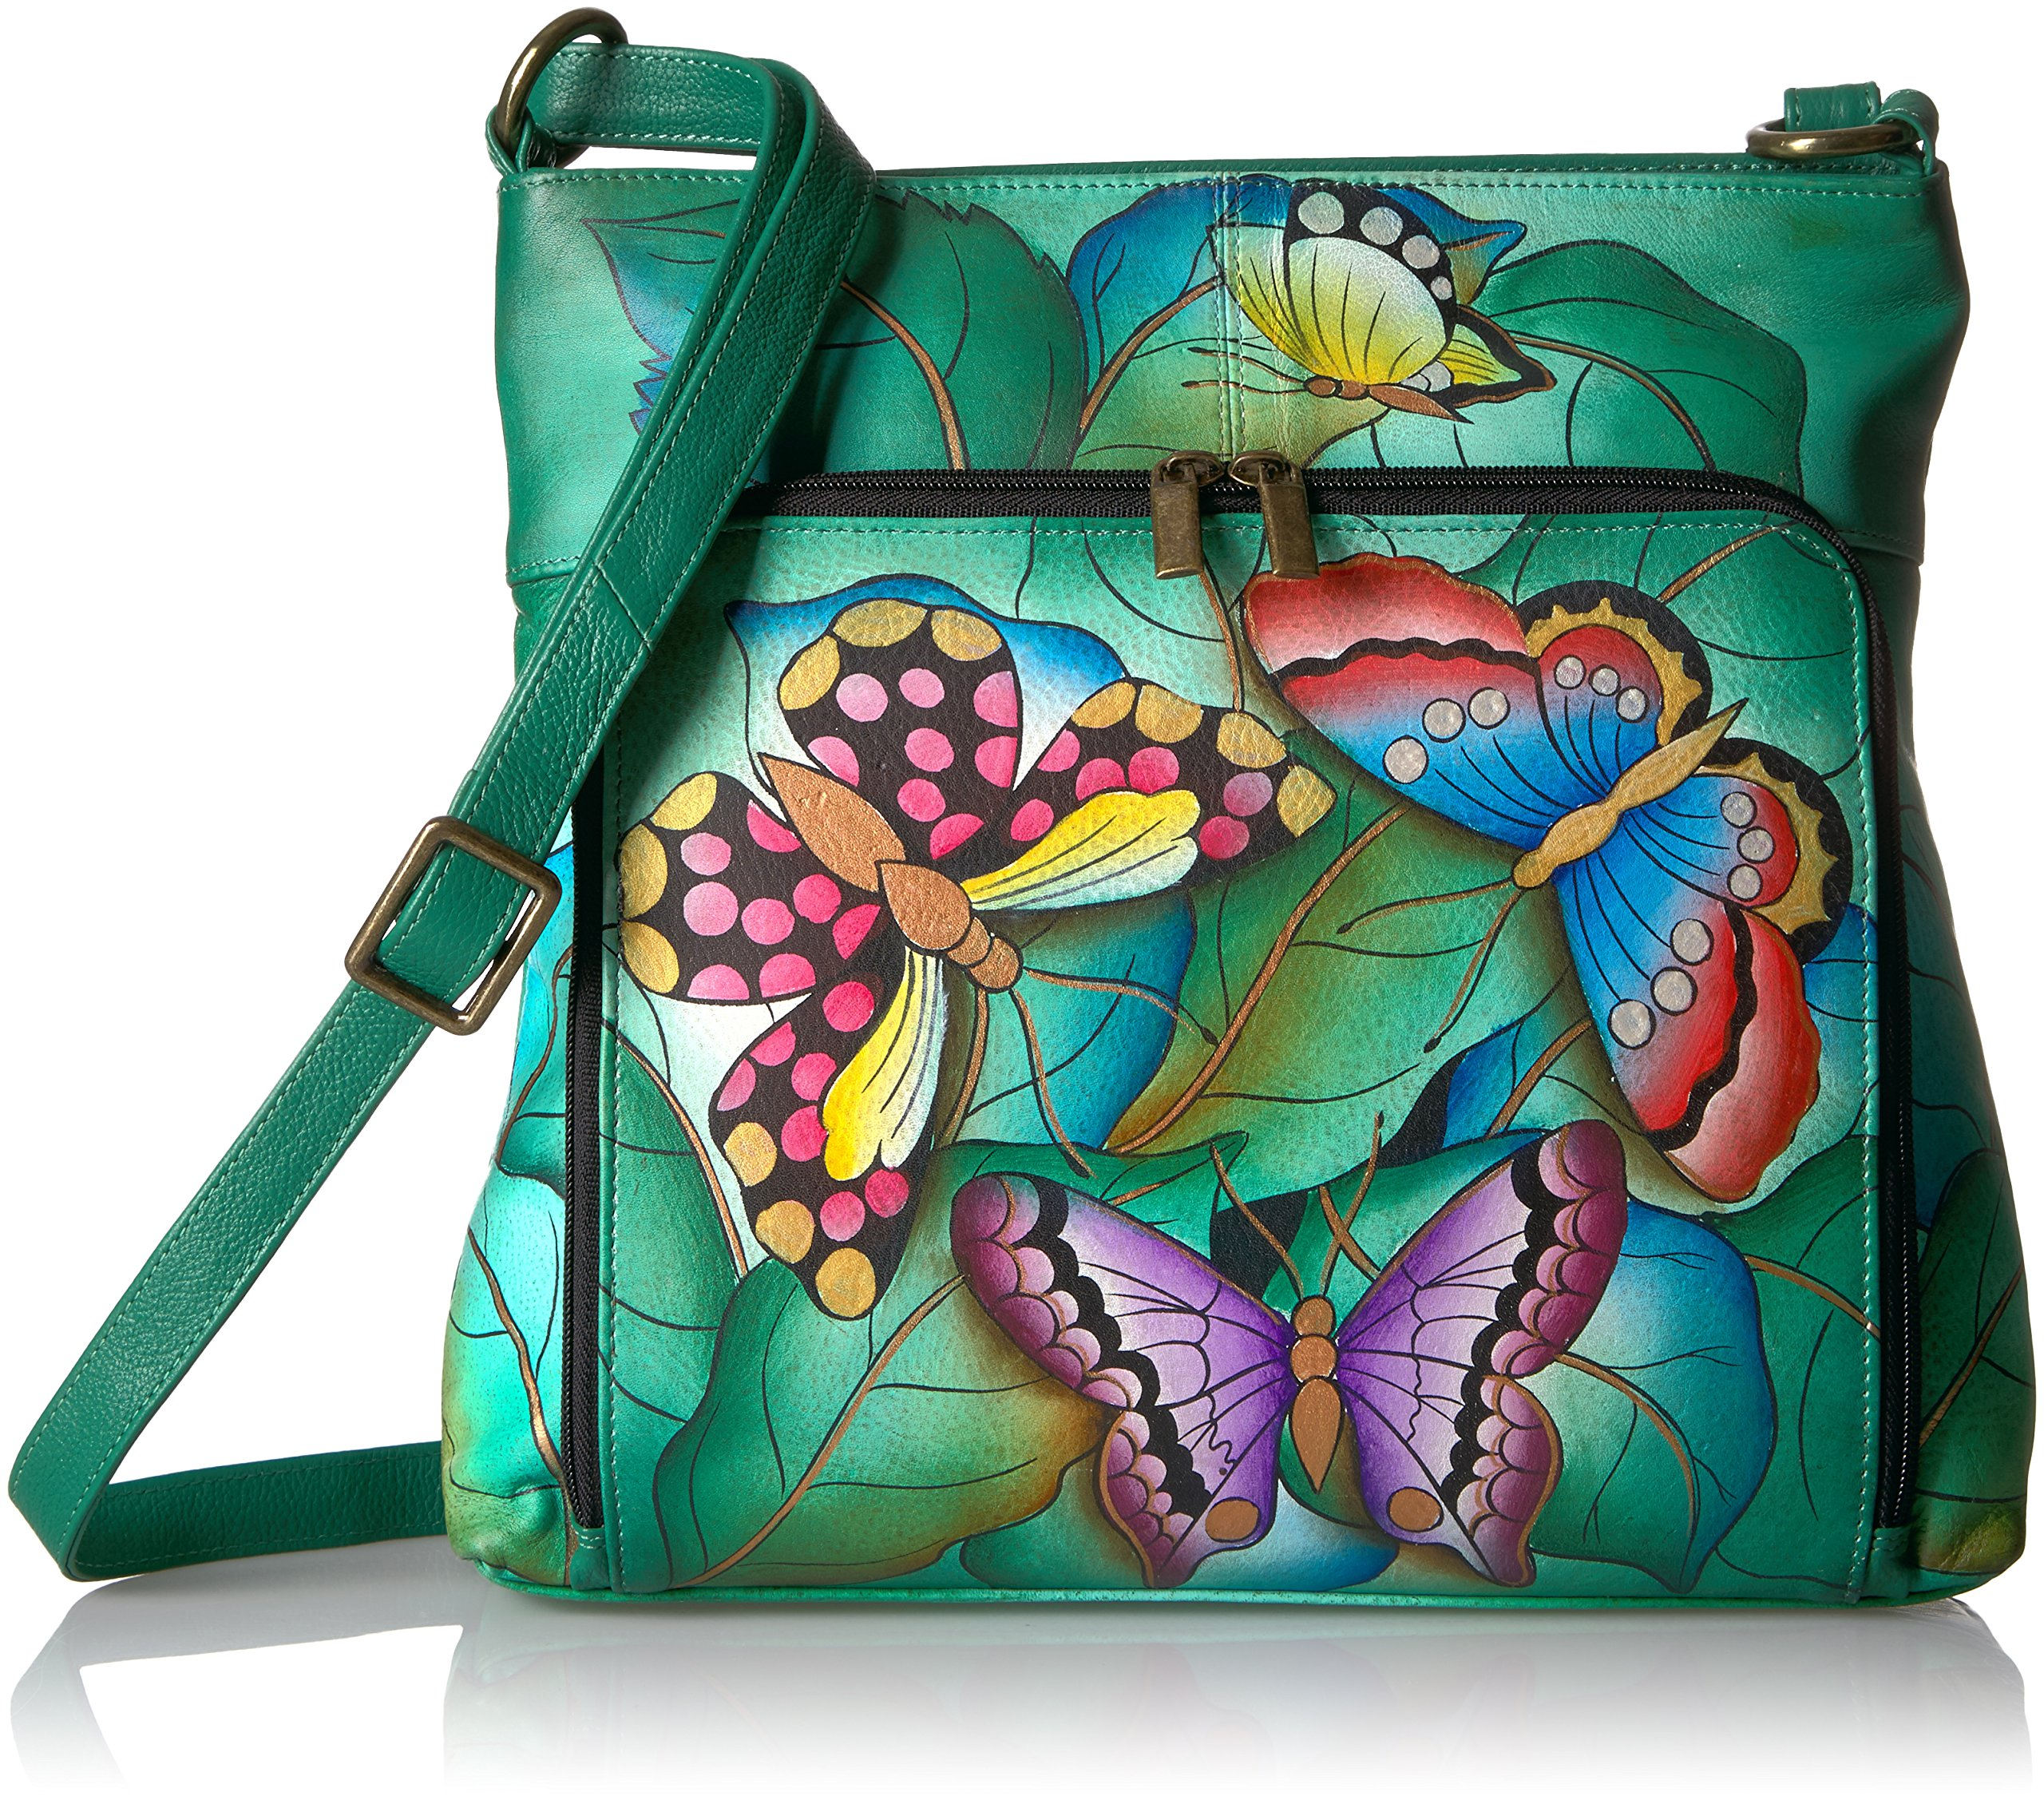 Anuschka Anna Handpainted Leather Organizer Cross Body-Summer Wings